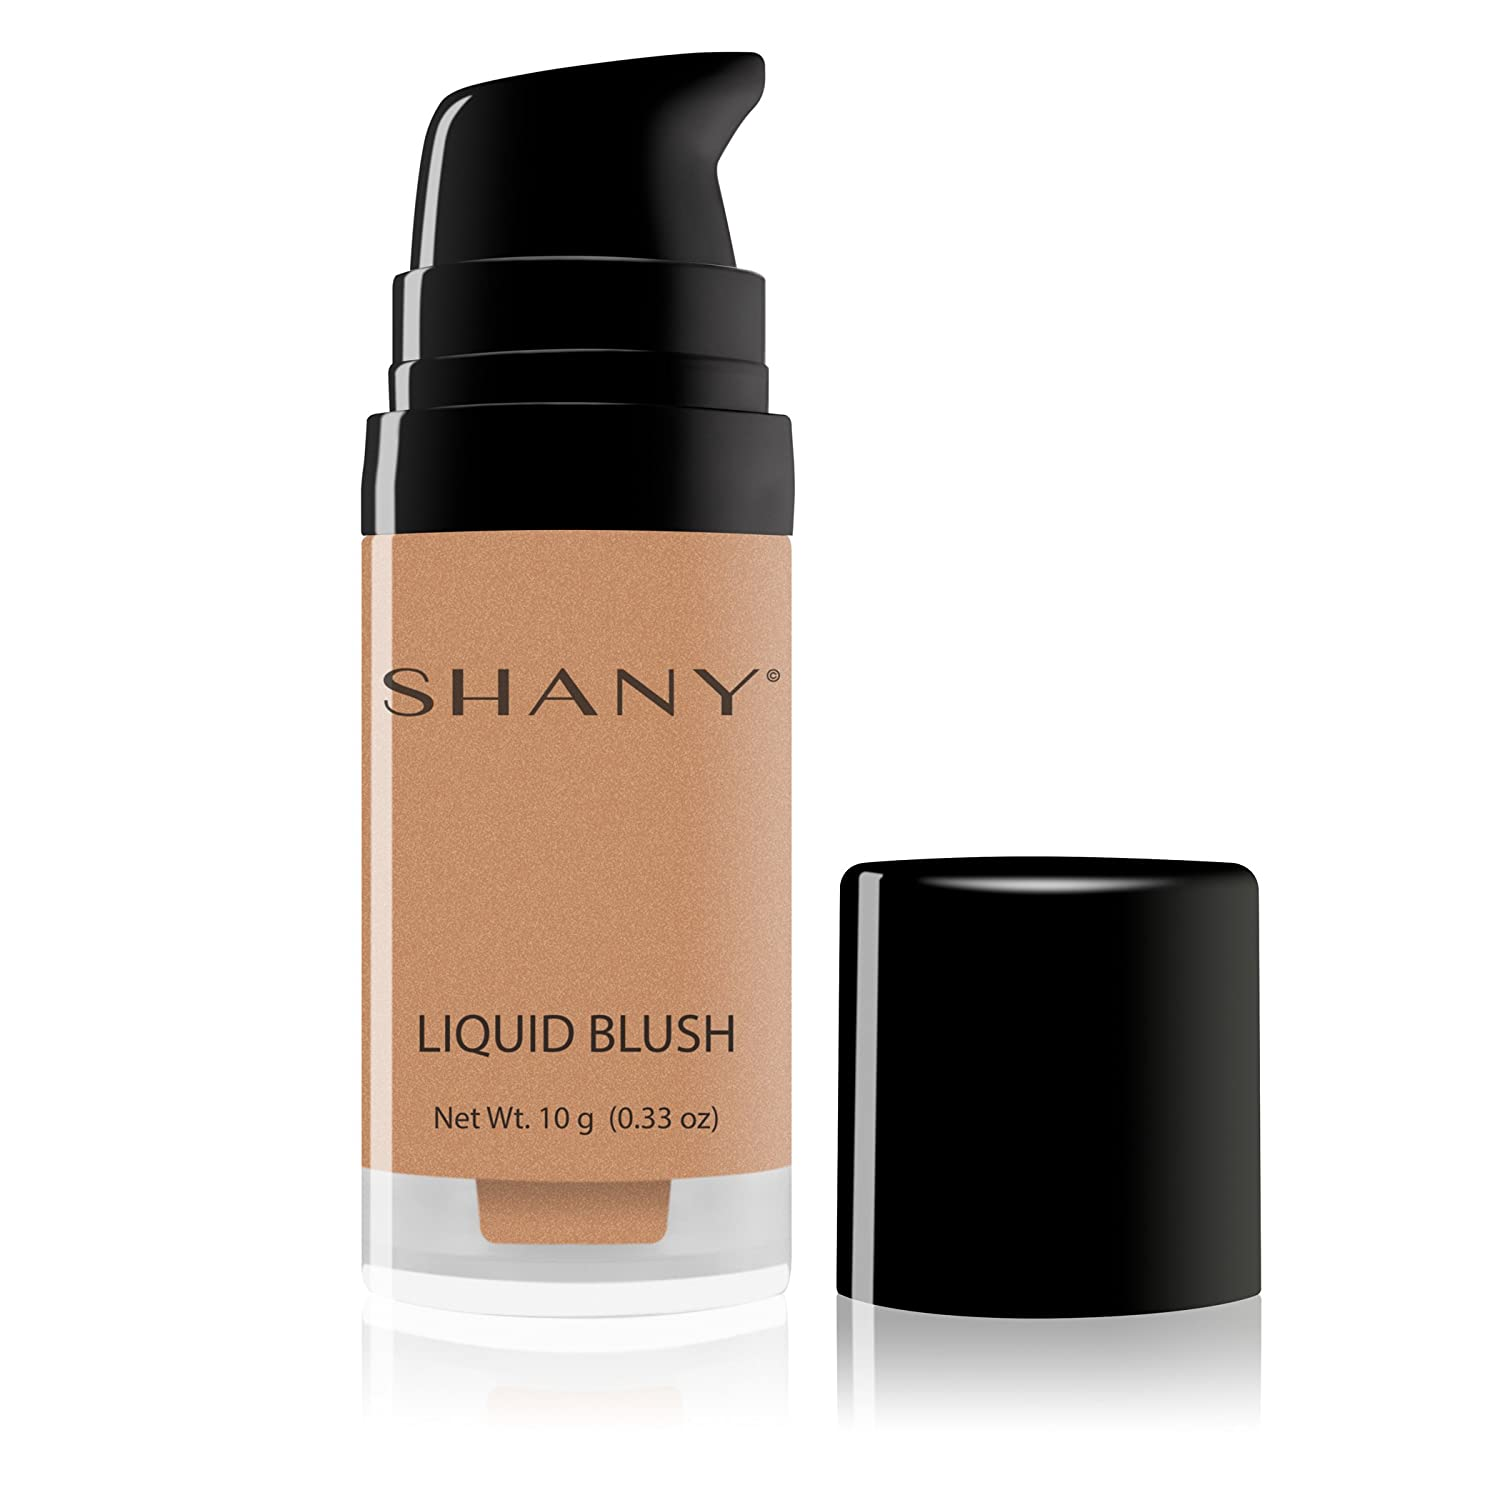 SHANY Paraben Free HD Liquid Blush, Pure Joy BL-H